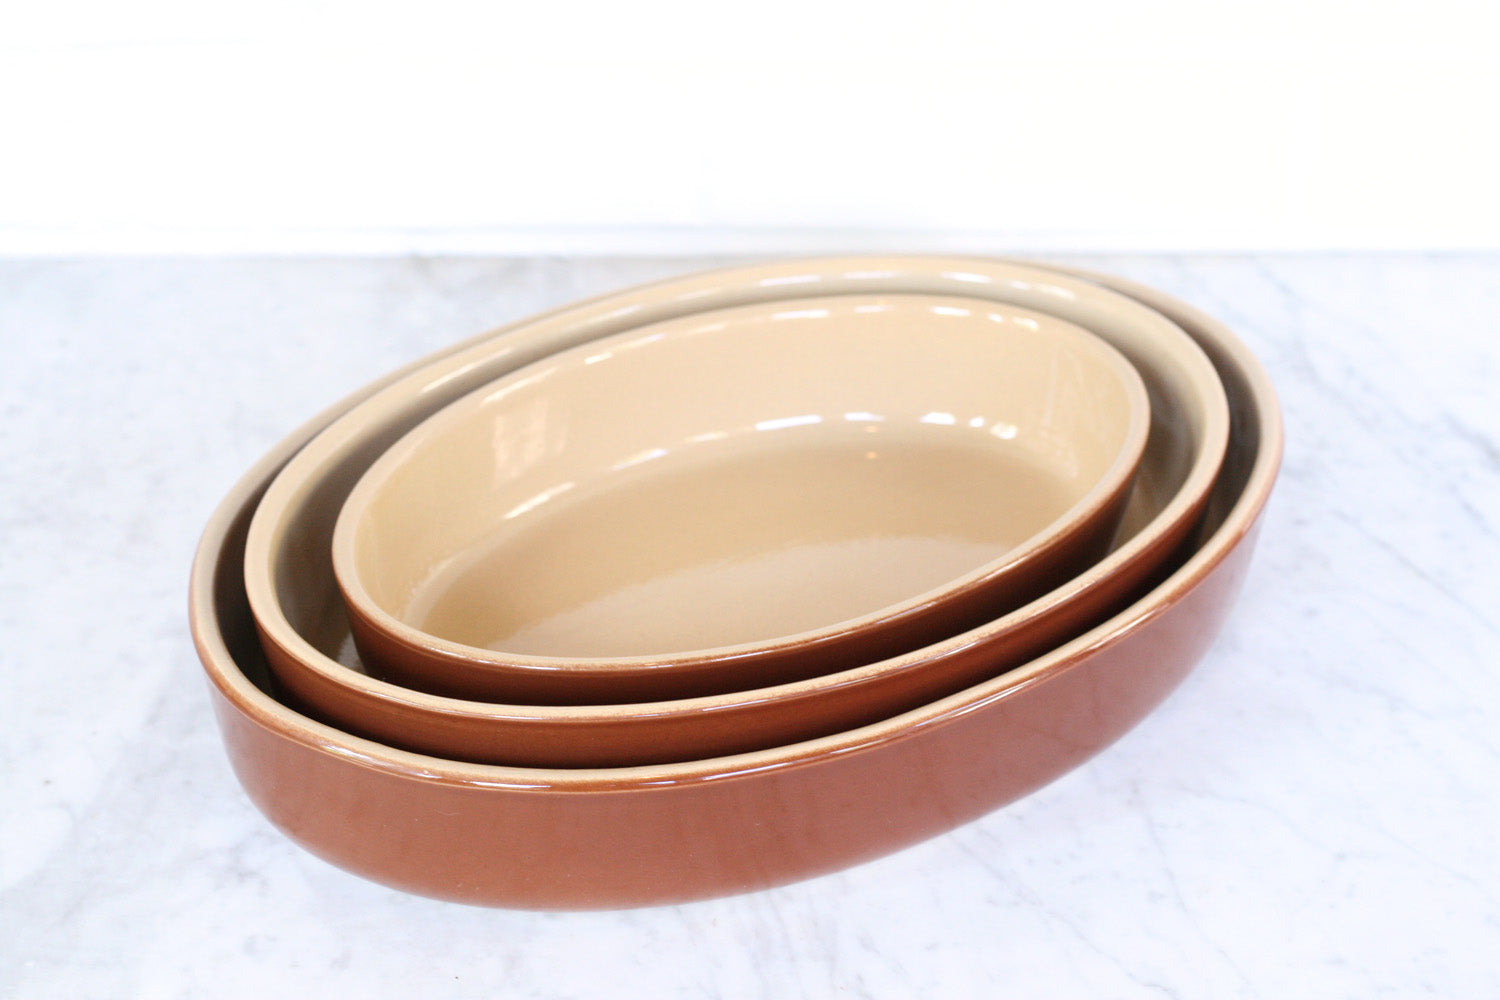 Poterie Renault Oval Baking Dish